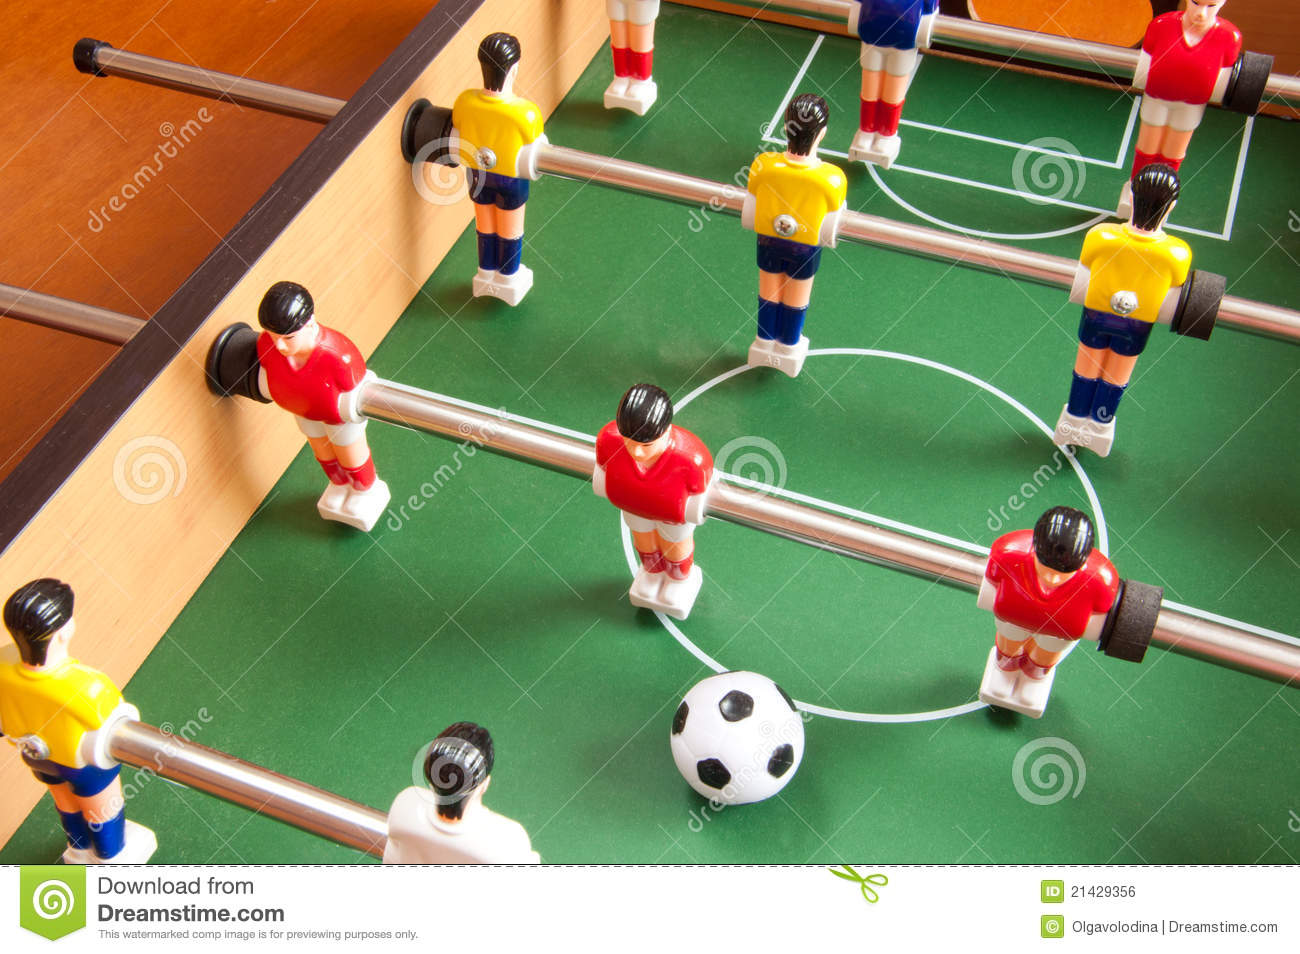 Football Players Toys For Toddlers : Table football royalty free stock image